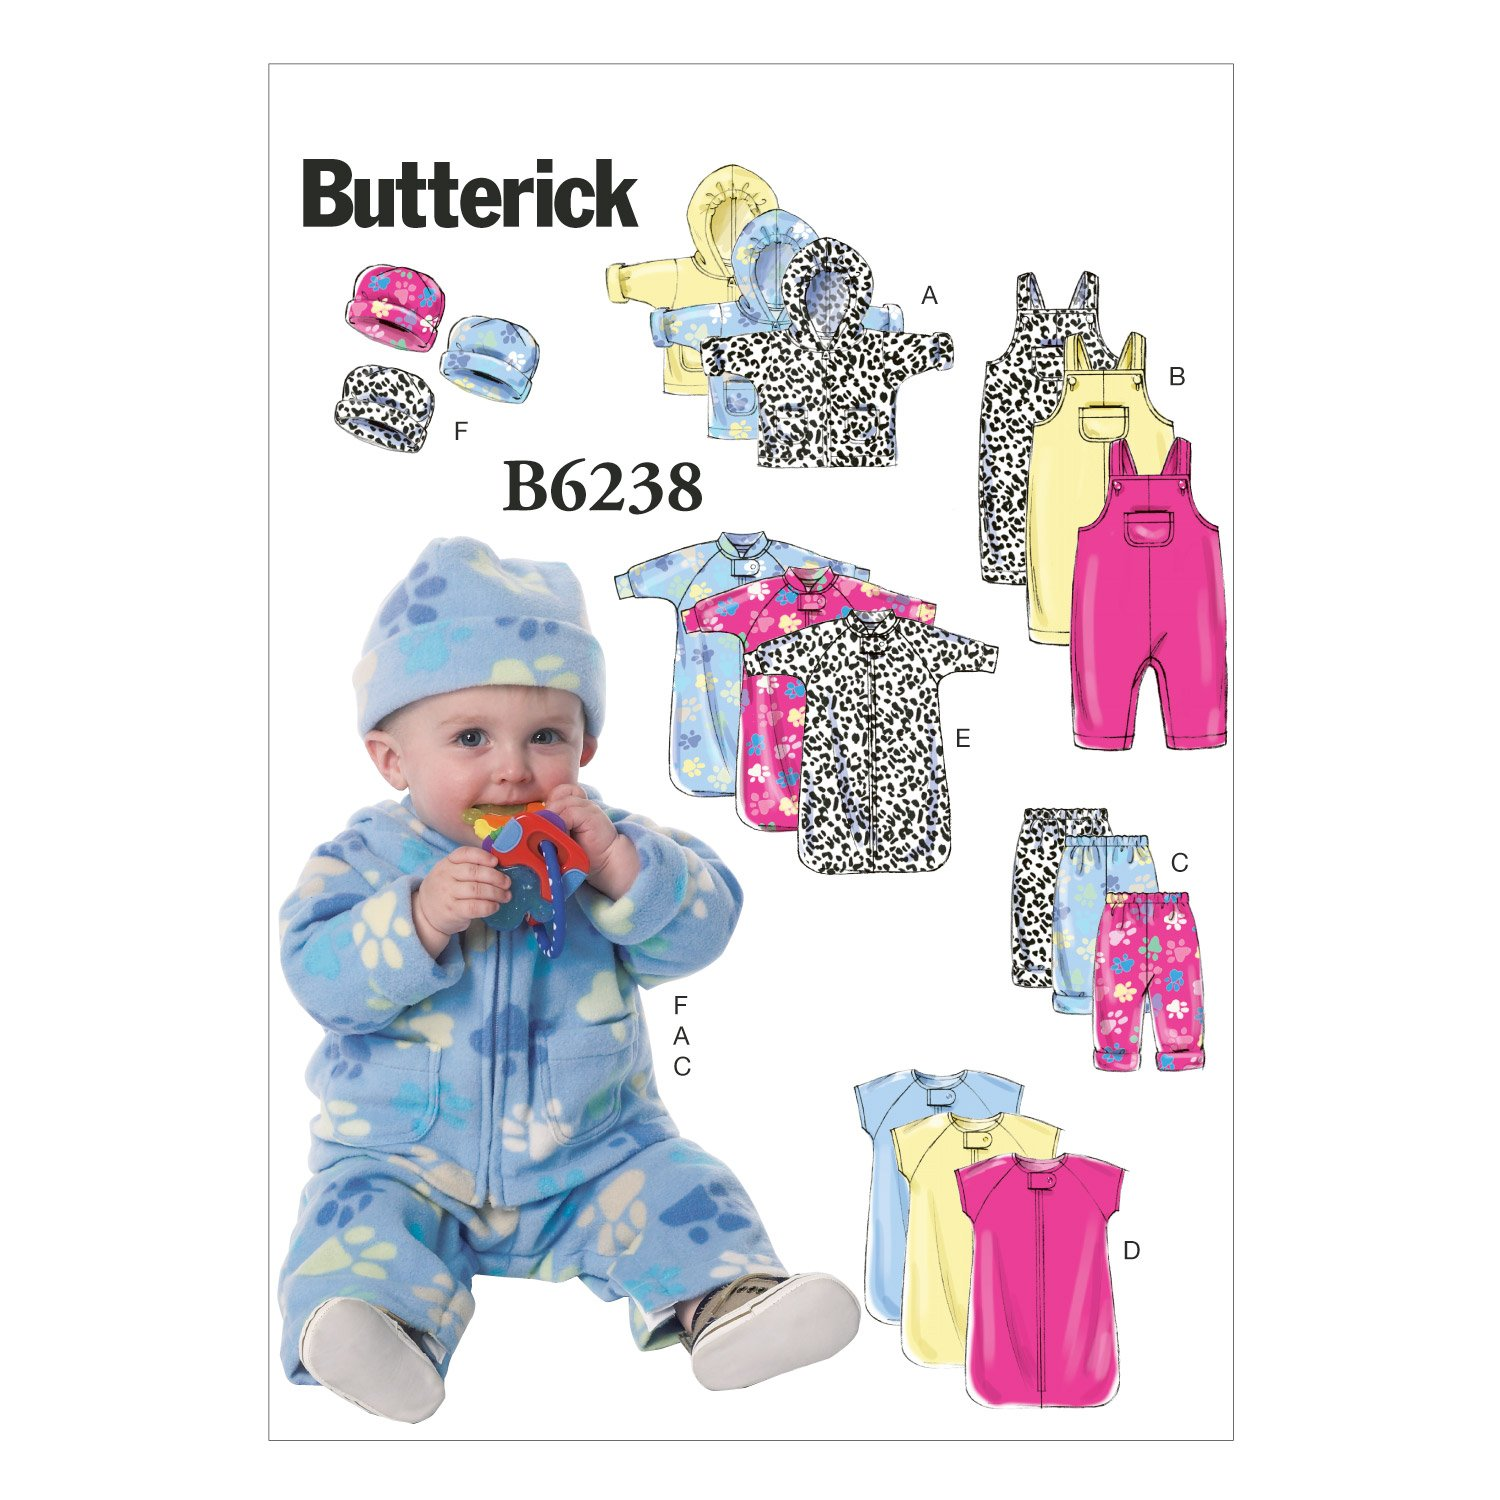 Butterick Patterns 6238 YA5,Infants Jacket,Overalls,Pants,Bunting and Hat,Sizes NB-S-M-L-XL, One Envelope The McCall Pattern Company B6238YA5